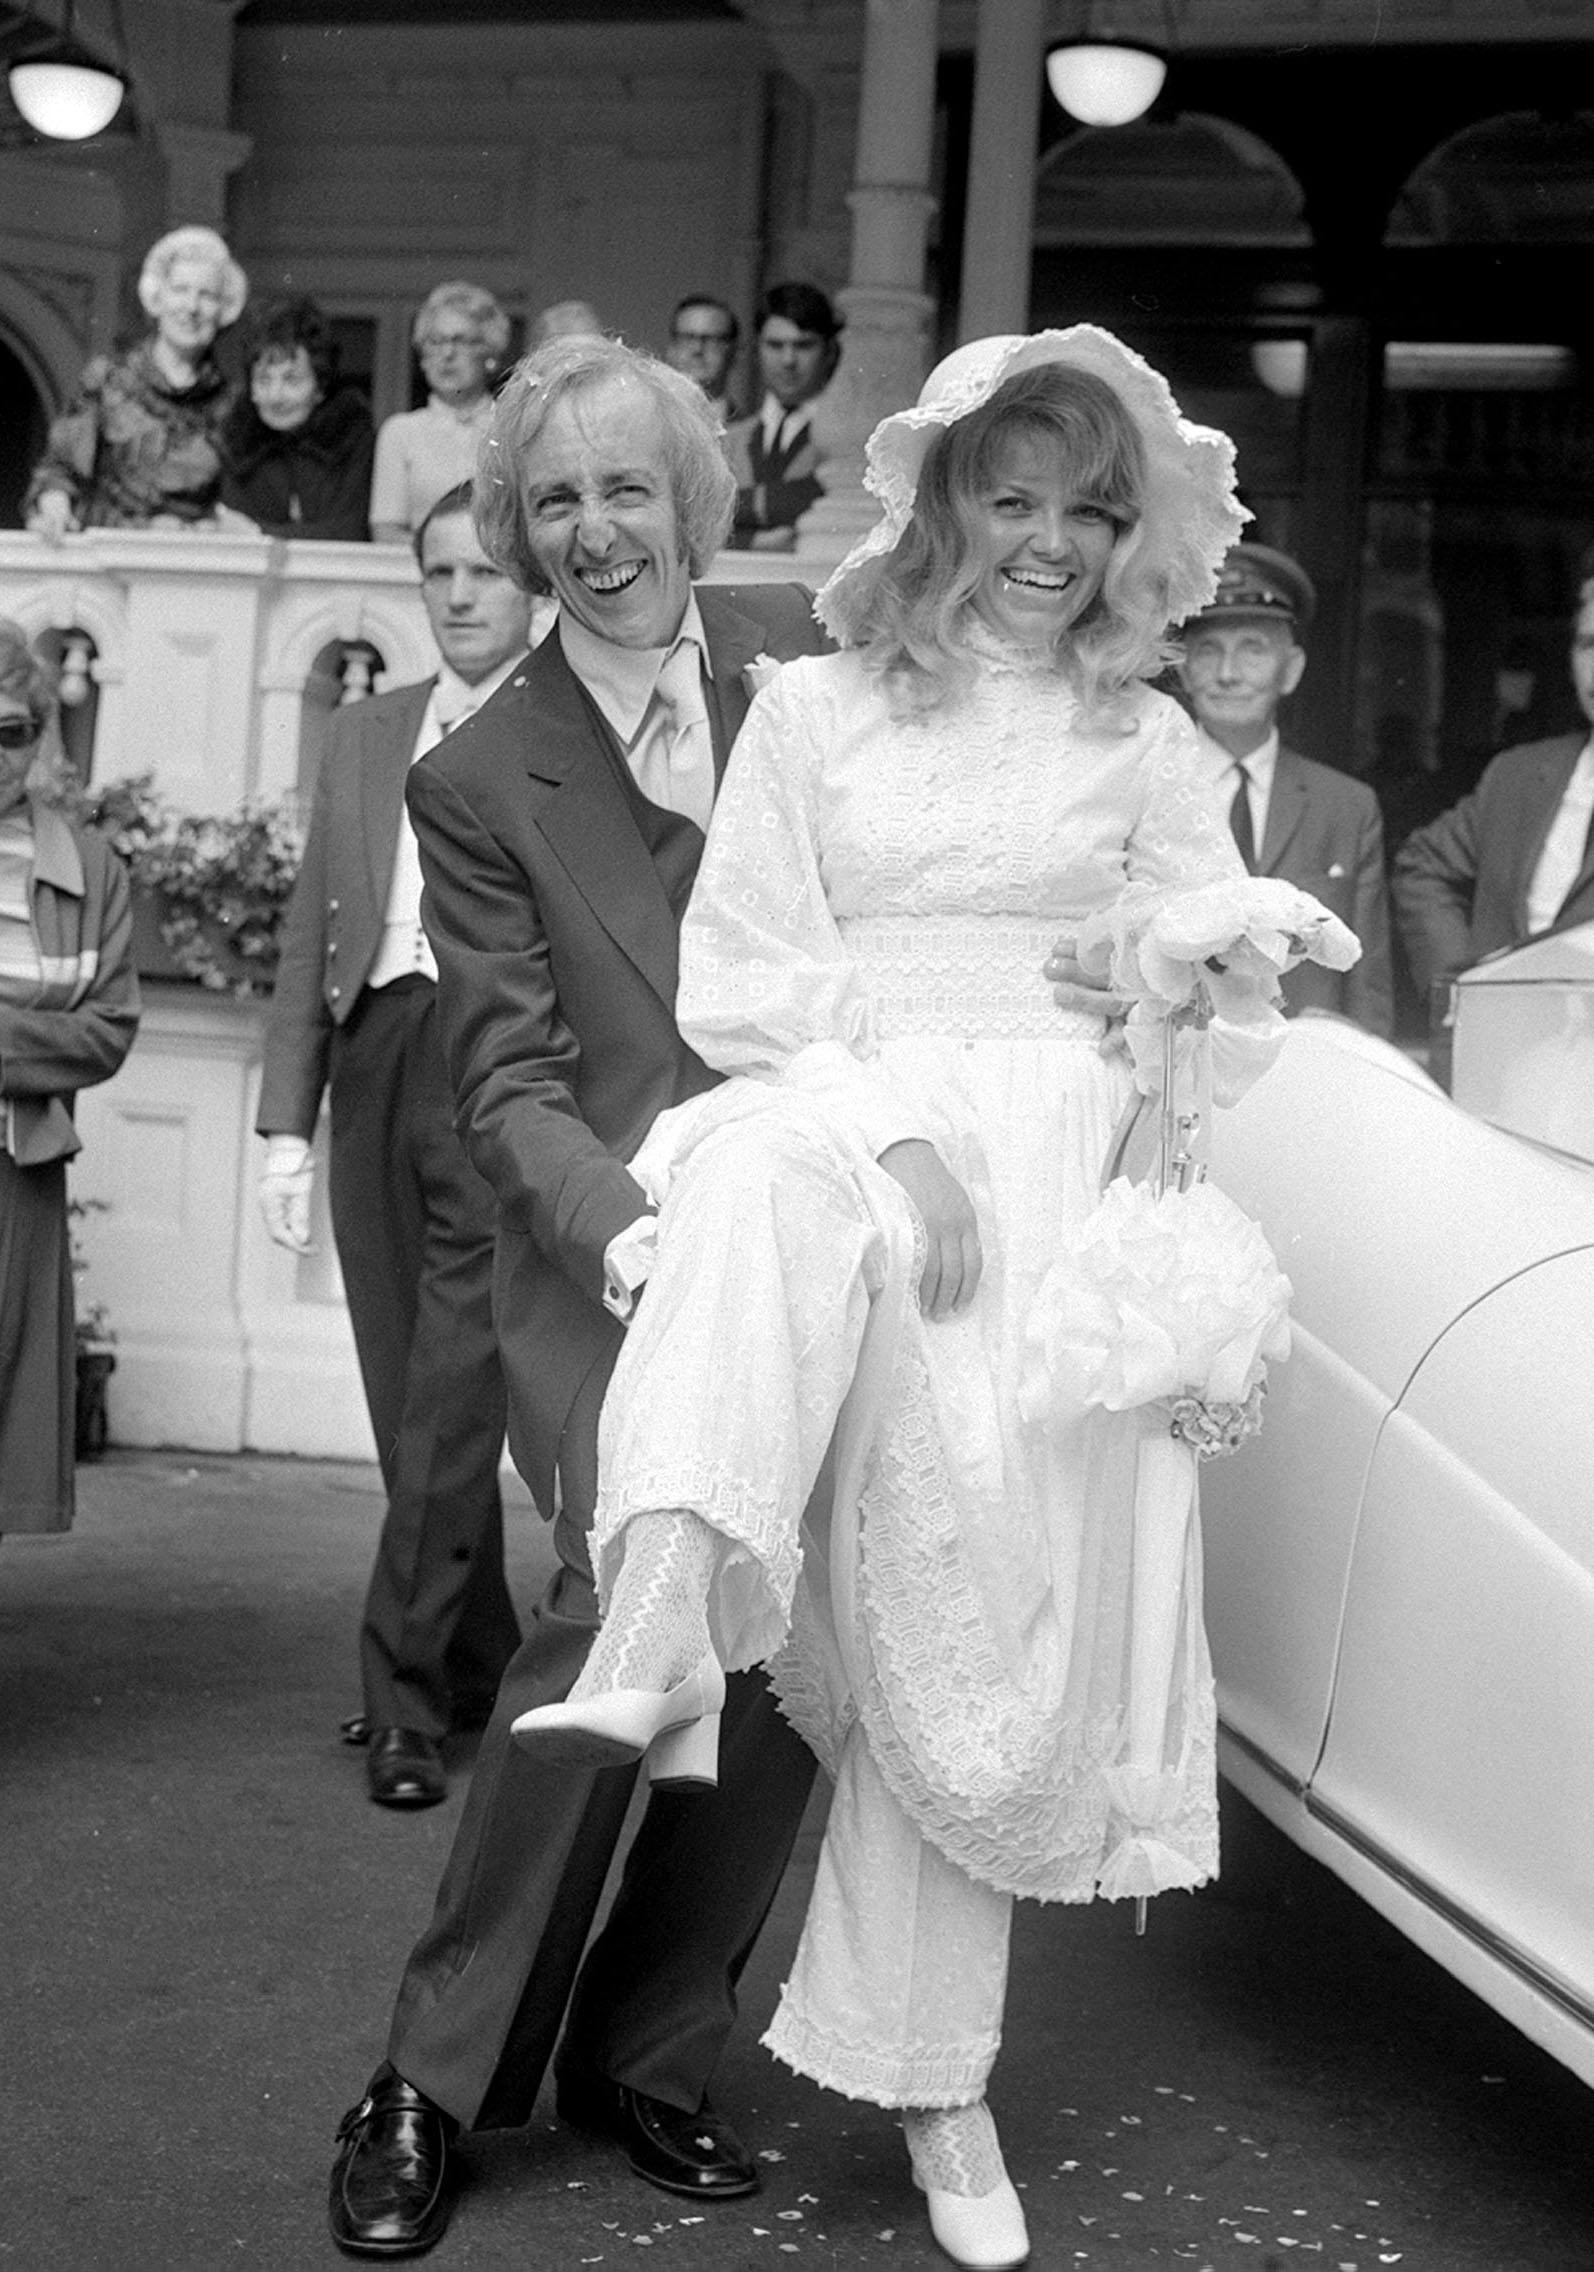 After the wedding at Caxton Hall on 24 August 1970, actor Bob Grant of television's On The Buses and his bride, former Kim Benwell, an ex-Raymond Revue girl, happily showing her old fashioned underwear. They were married until Grant took his own life in 2003.